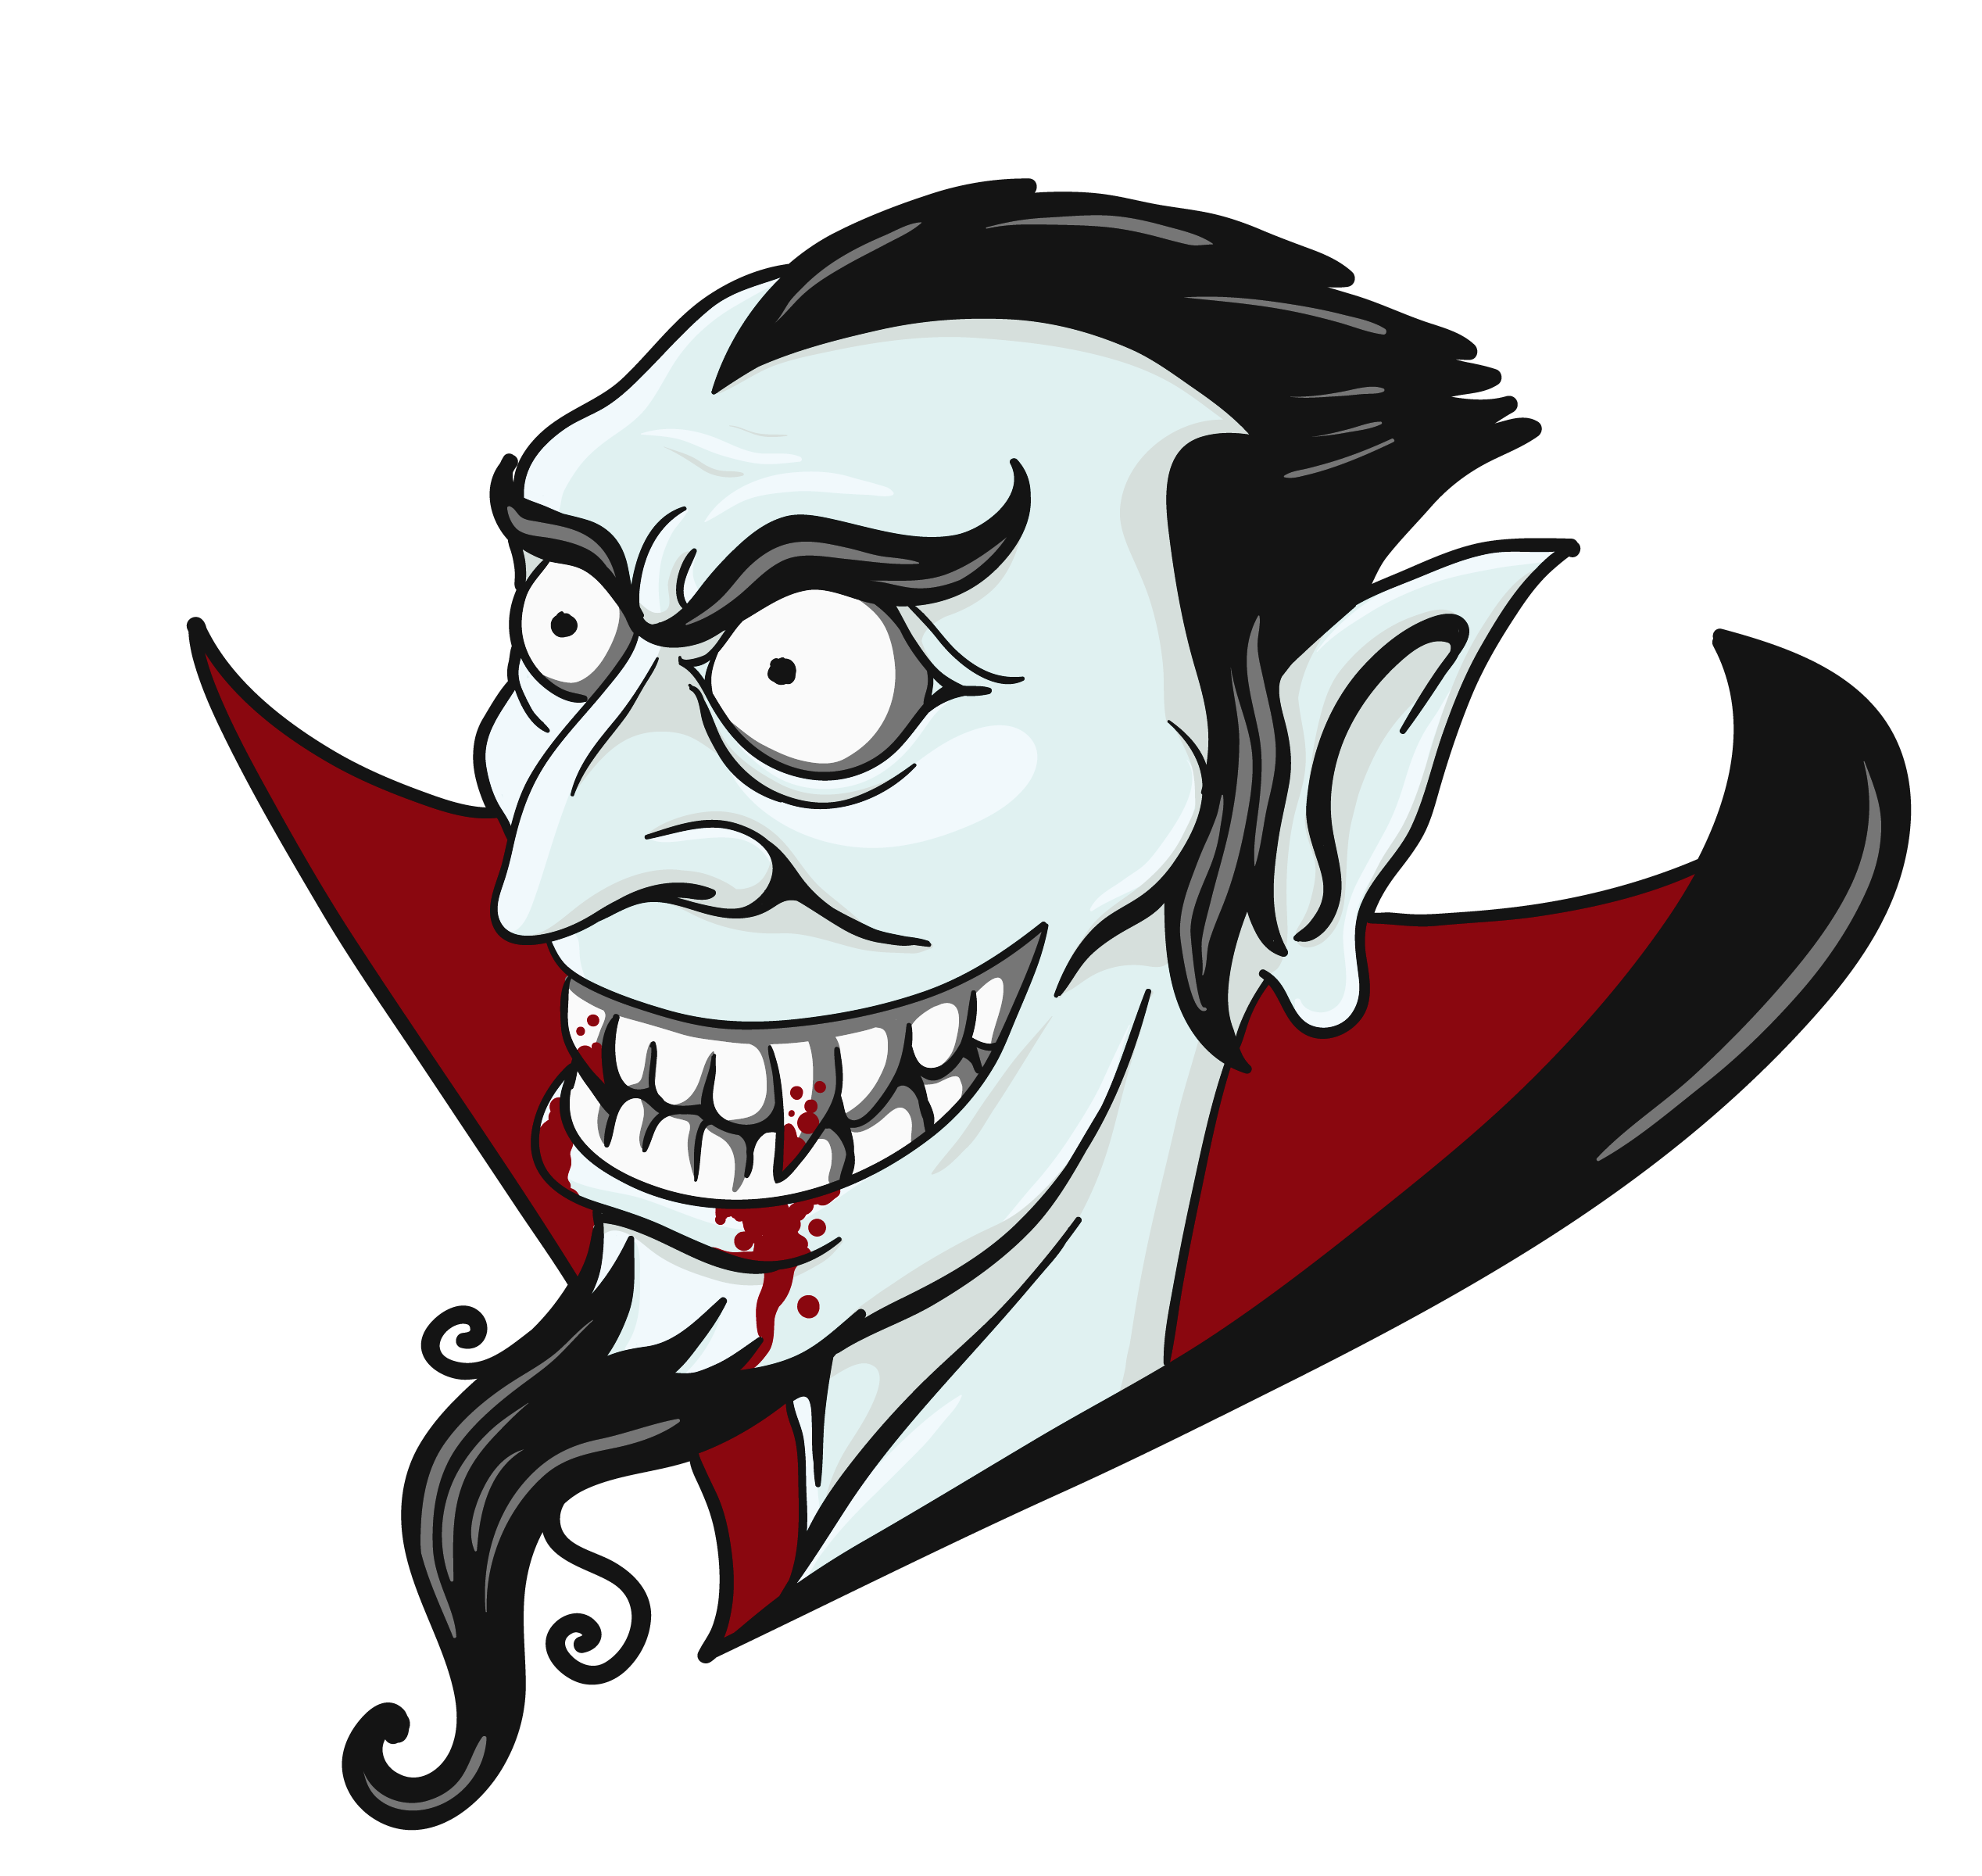 Joker clipart head High  Halloween Quality Clip